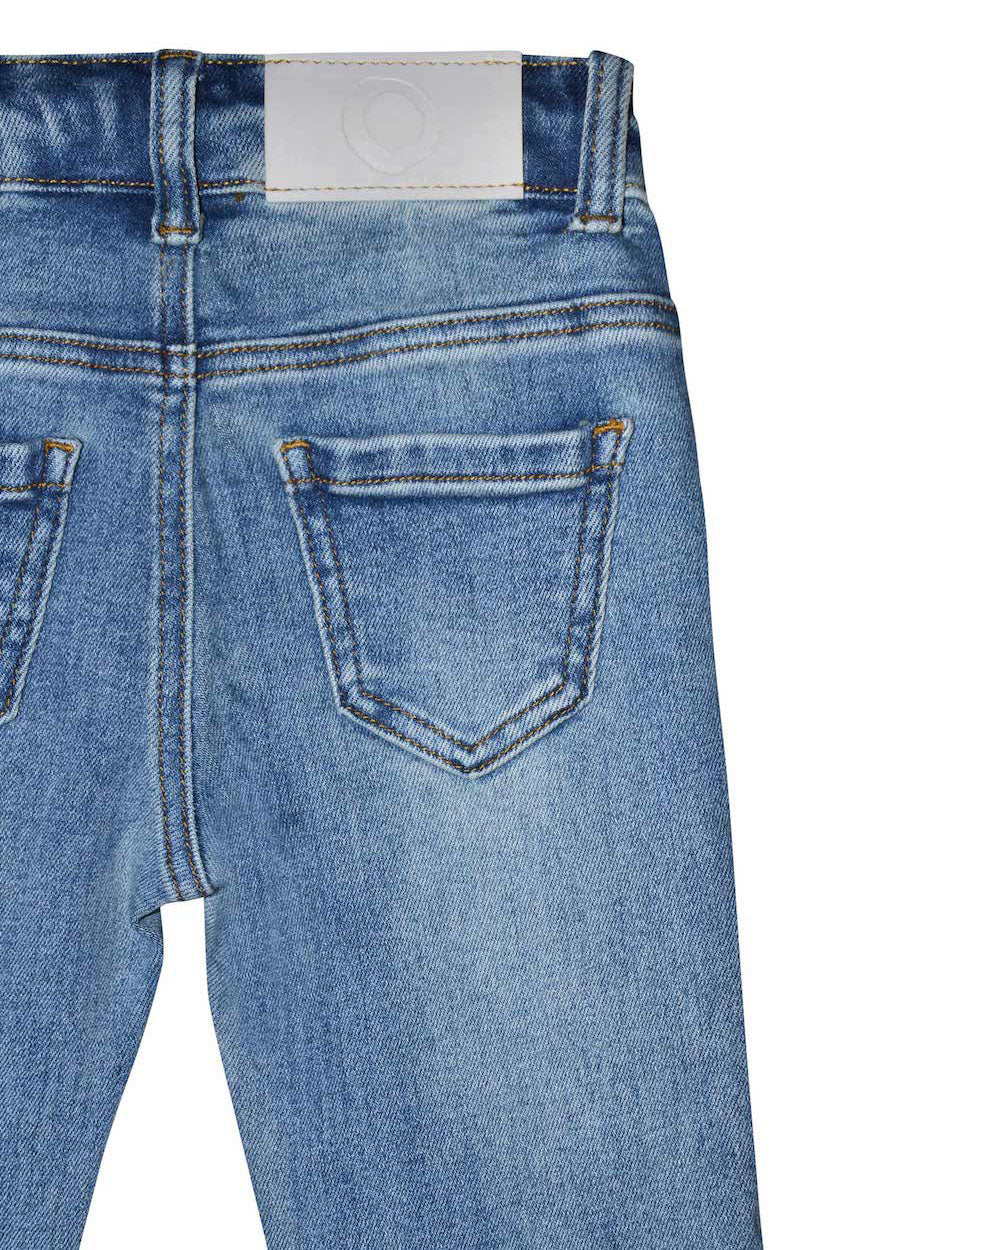 I Dig Denim Madison Jeans - Blue